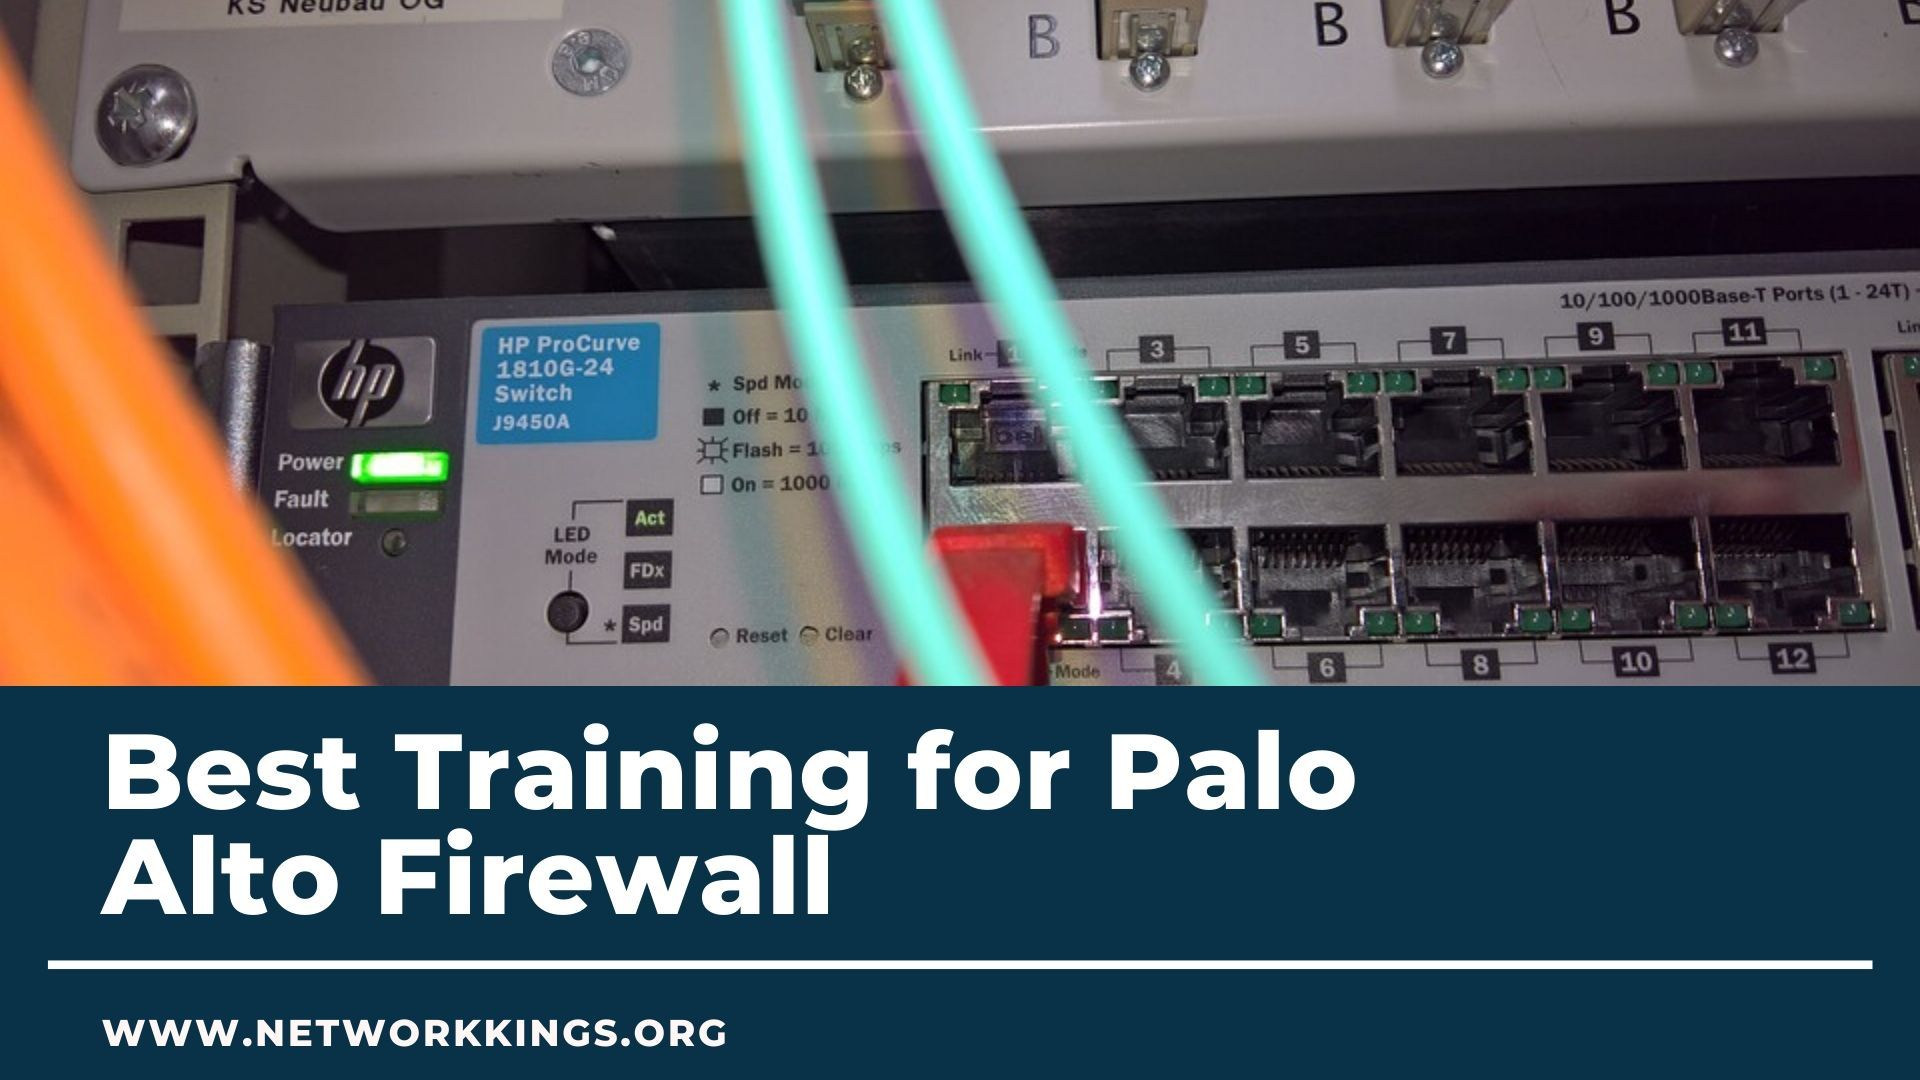 Get The Best Training For Palo Alto Firewall Palo Alto Firewall Palo Alto Online Training